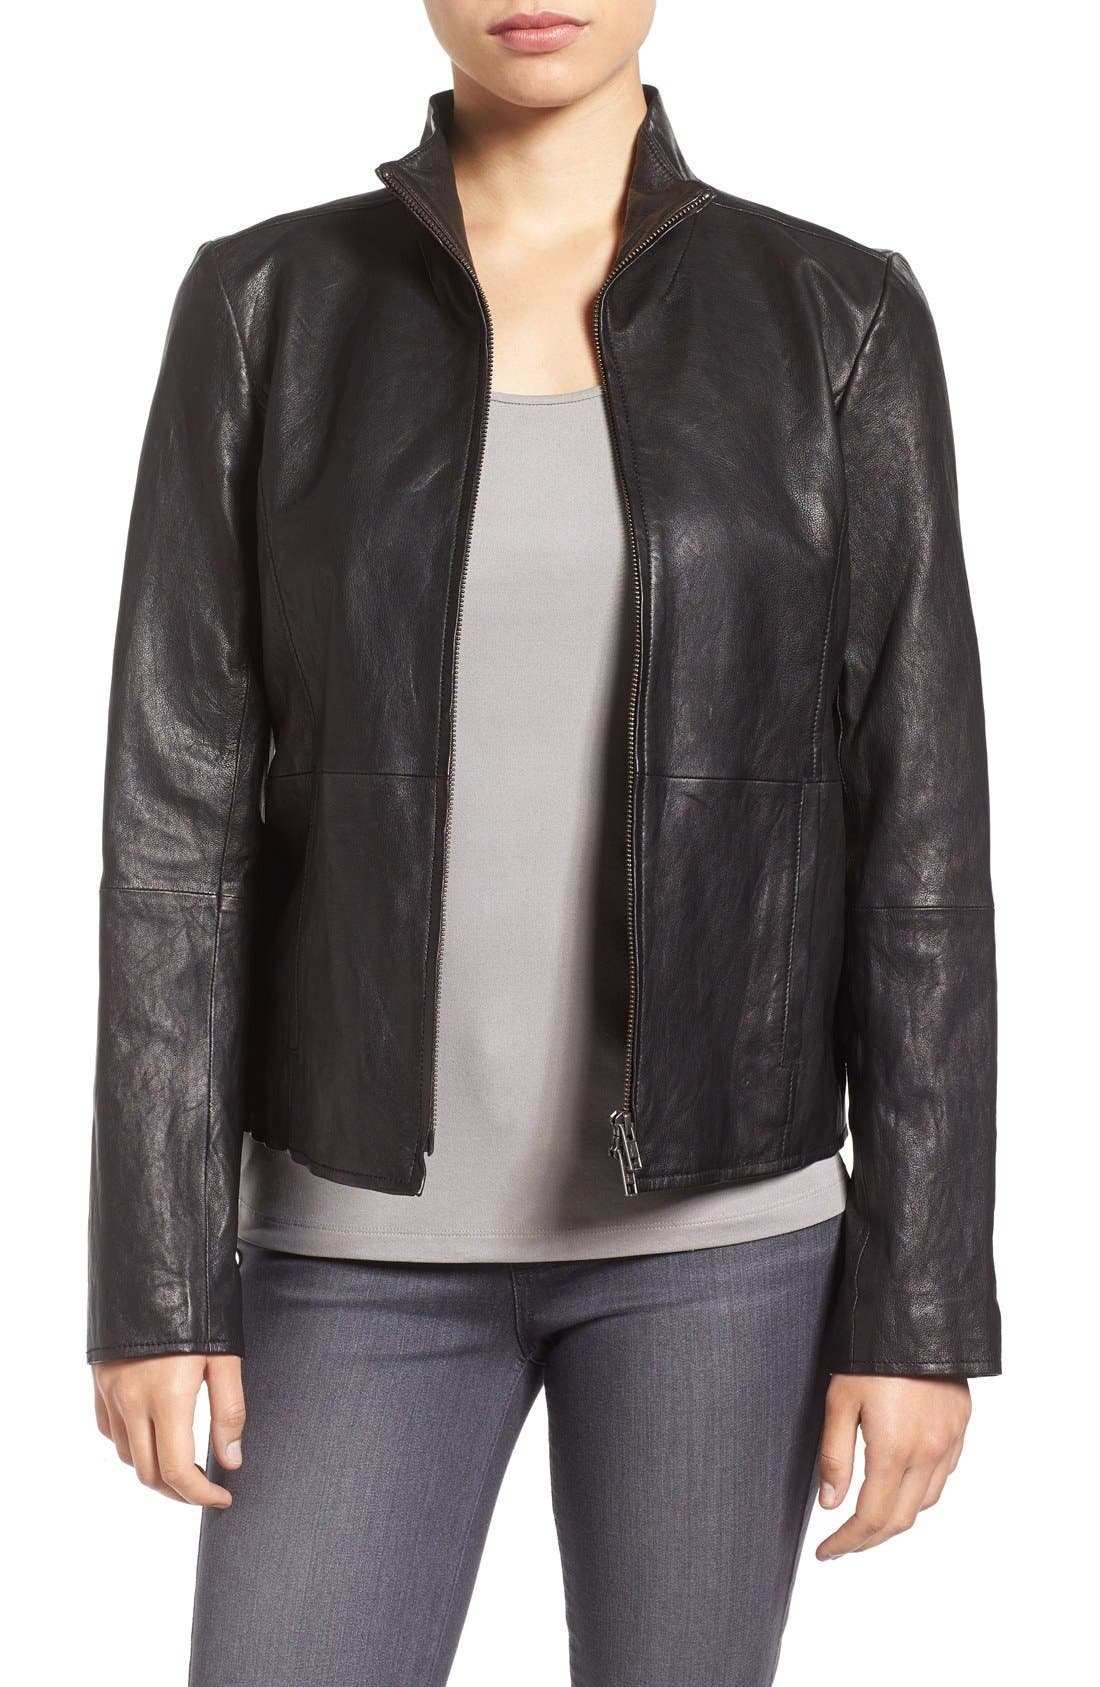 Rumpled Luxe Leather Stand Collar Jacket,                         Main,                         color, 001